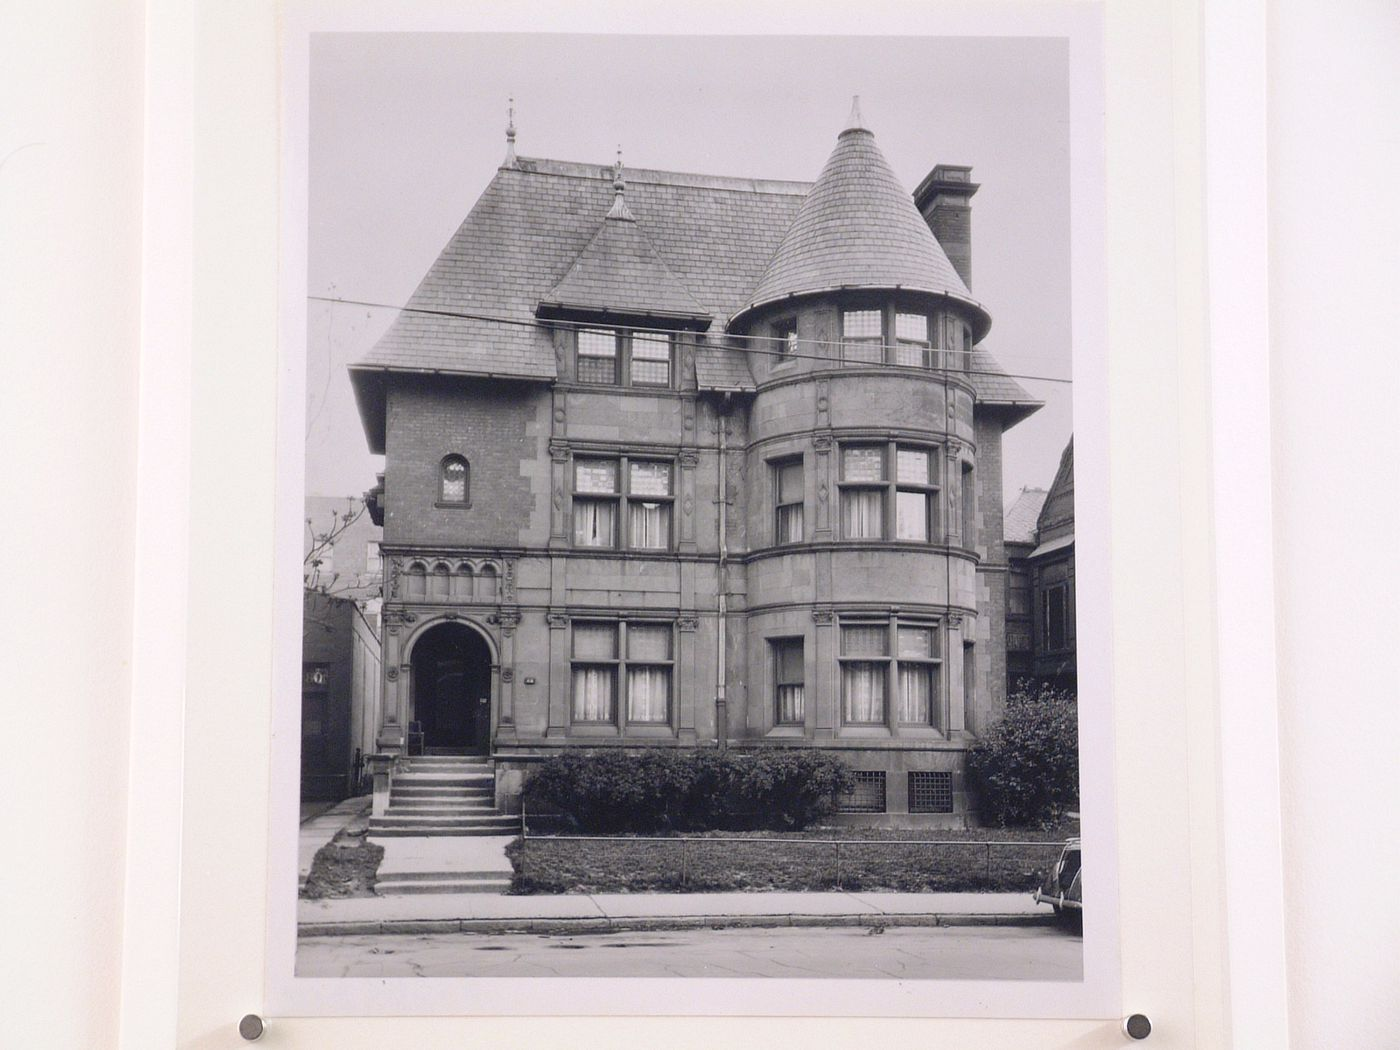 Photograph of a three story mansion with a turret